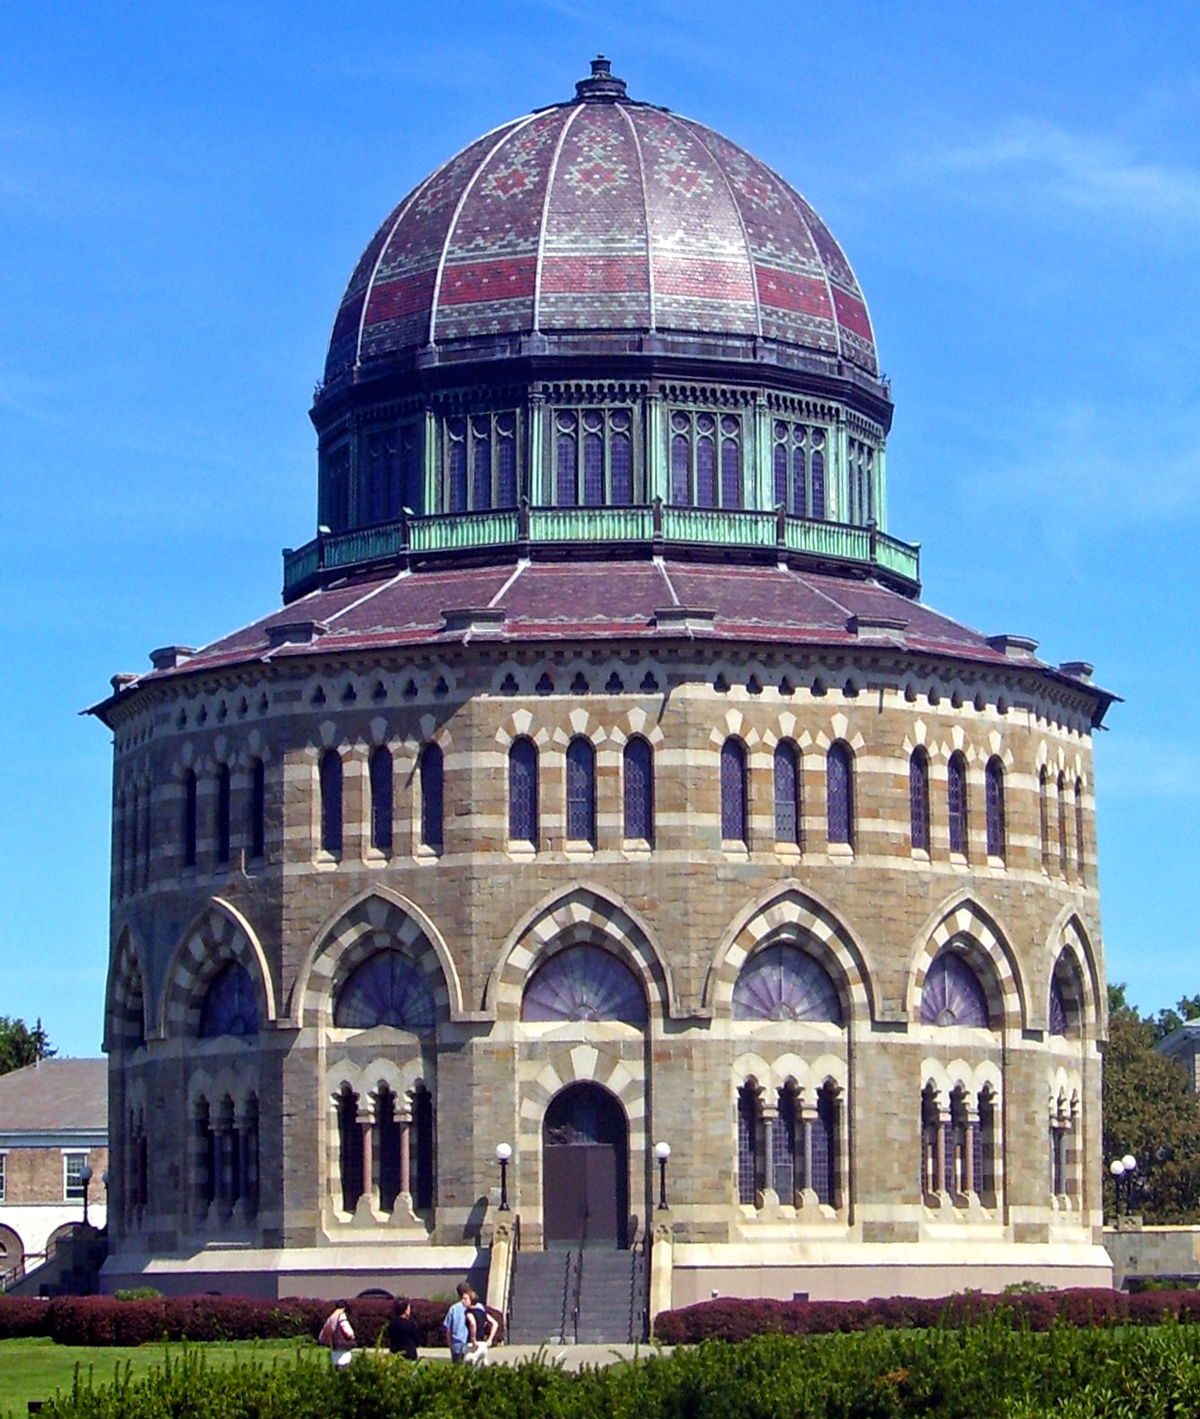 1200px-Nott_Memorial_Hall,_Union_College,_Schenectady,_NY